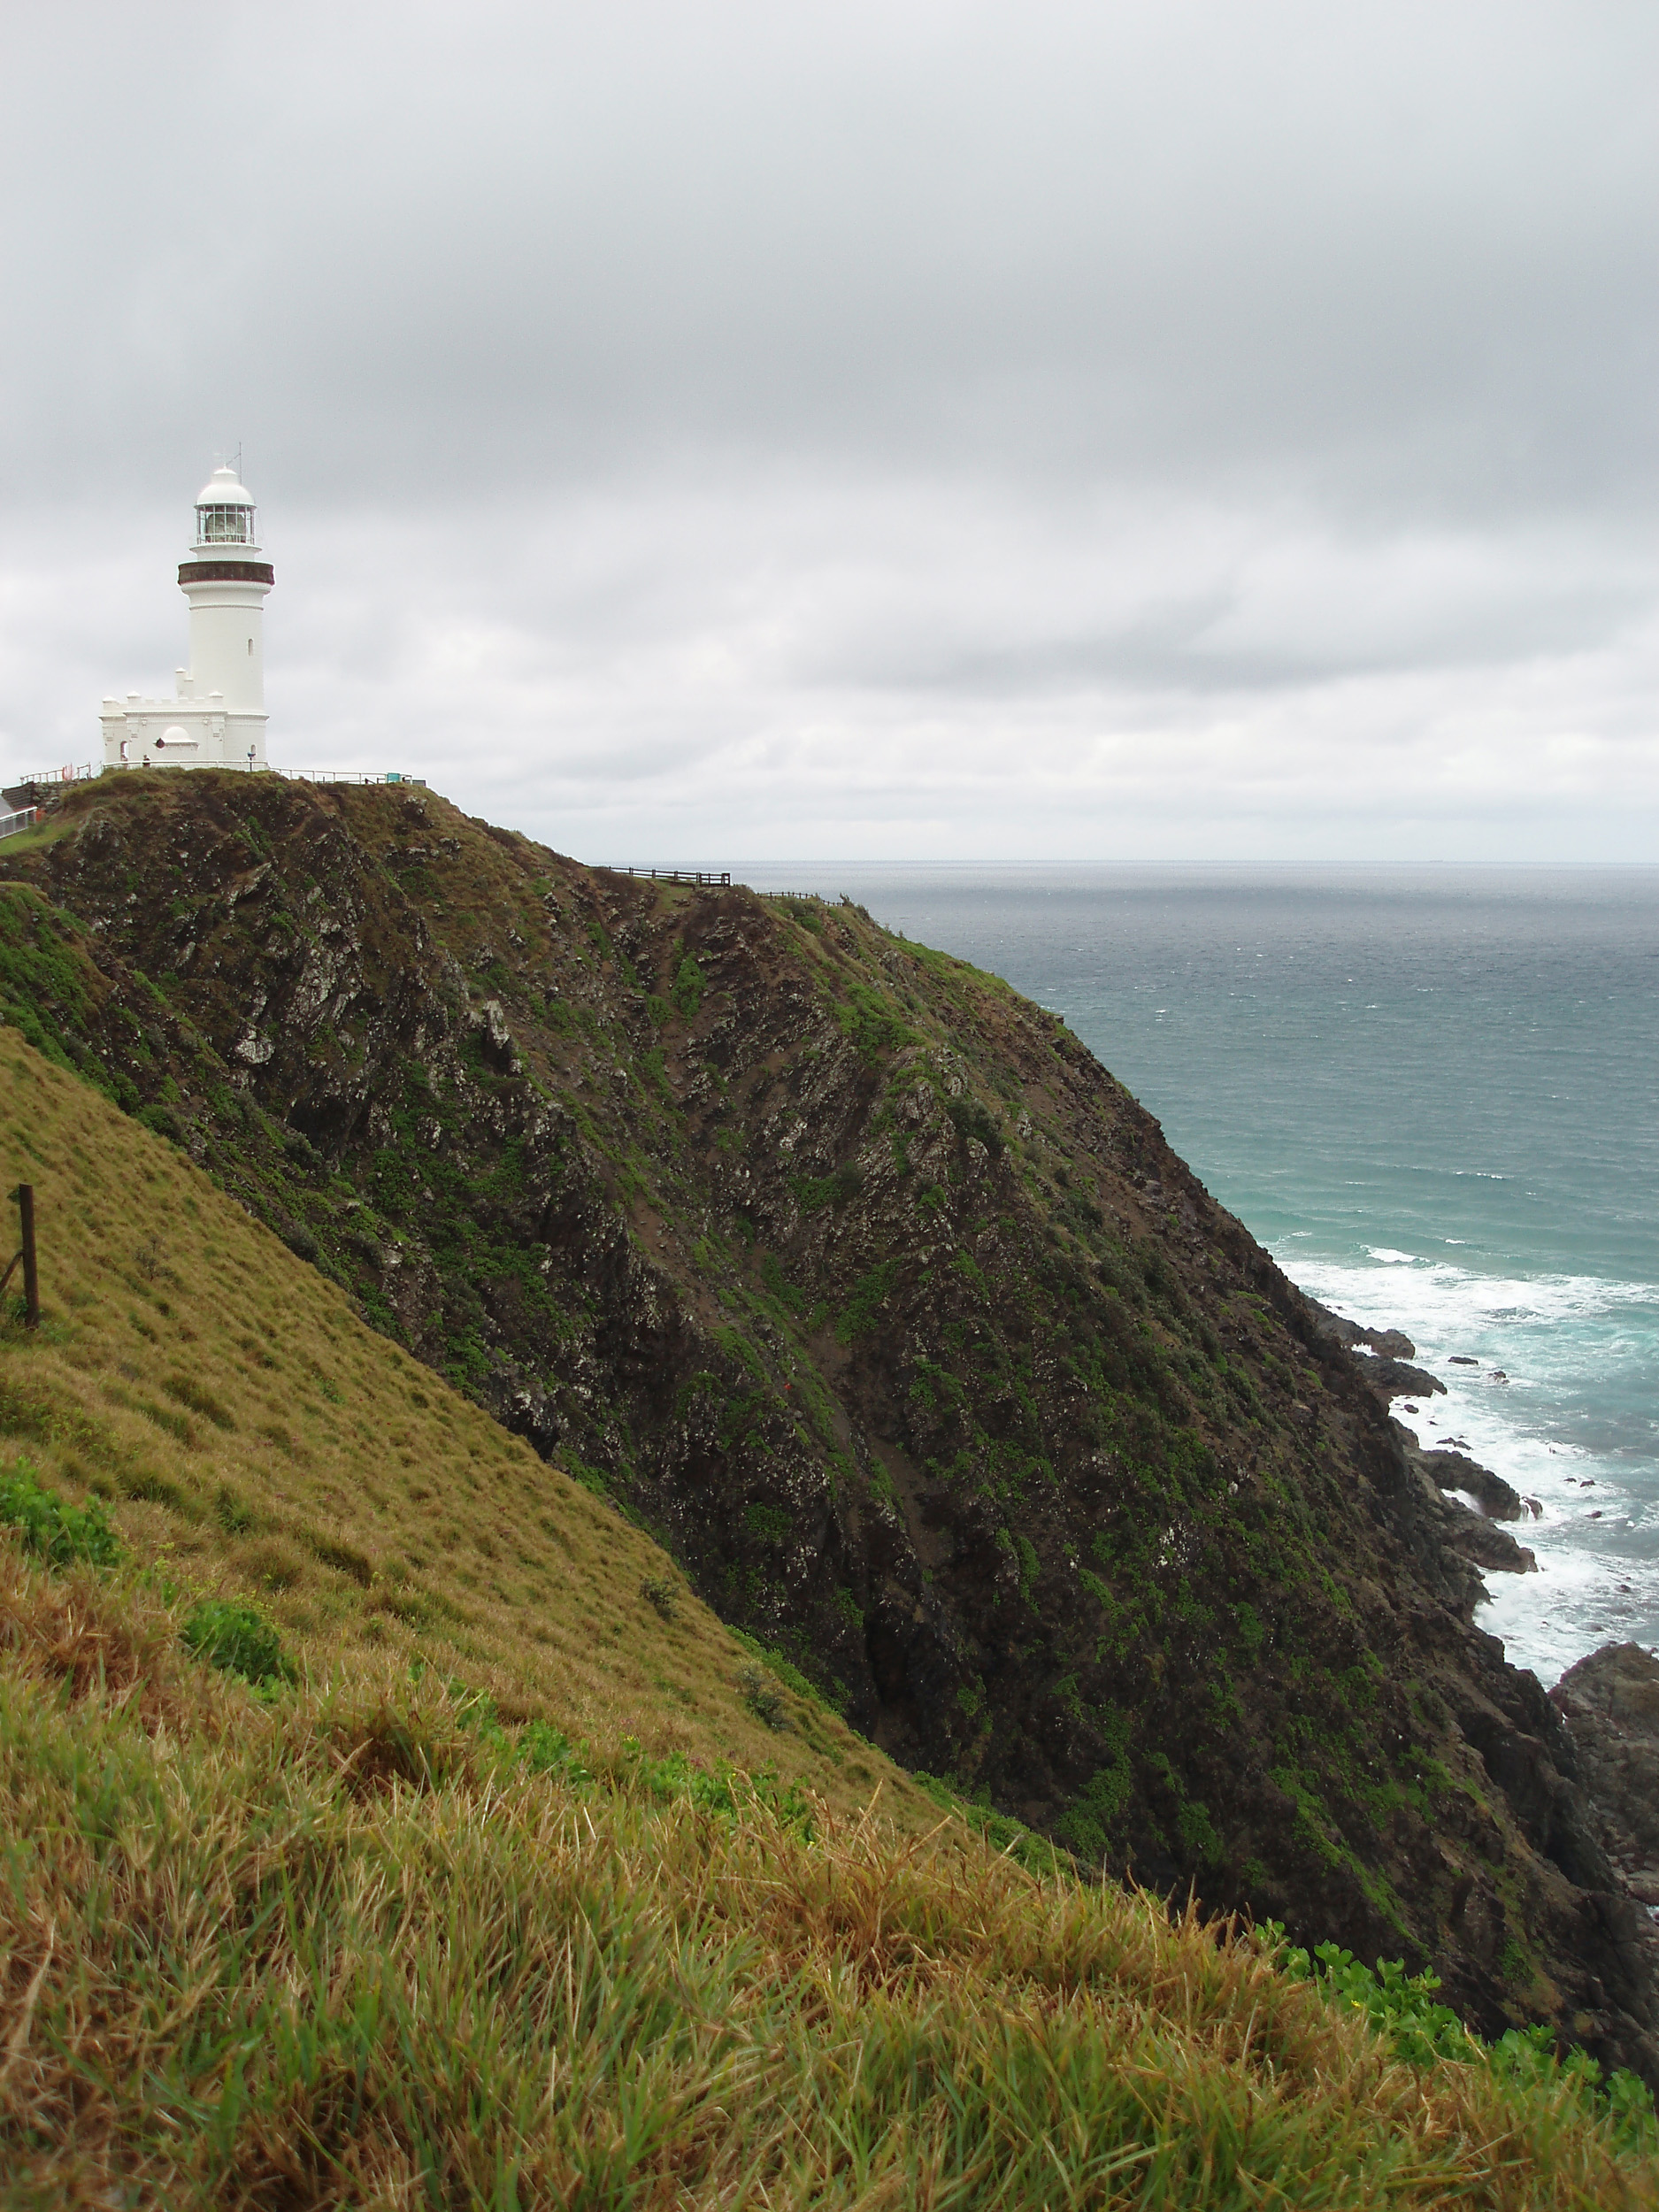 byron bay light house stood on top of cape byron